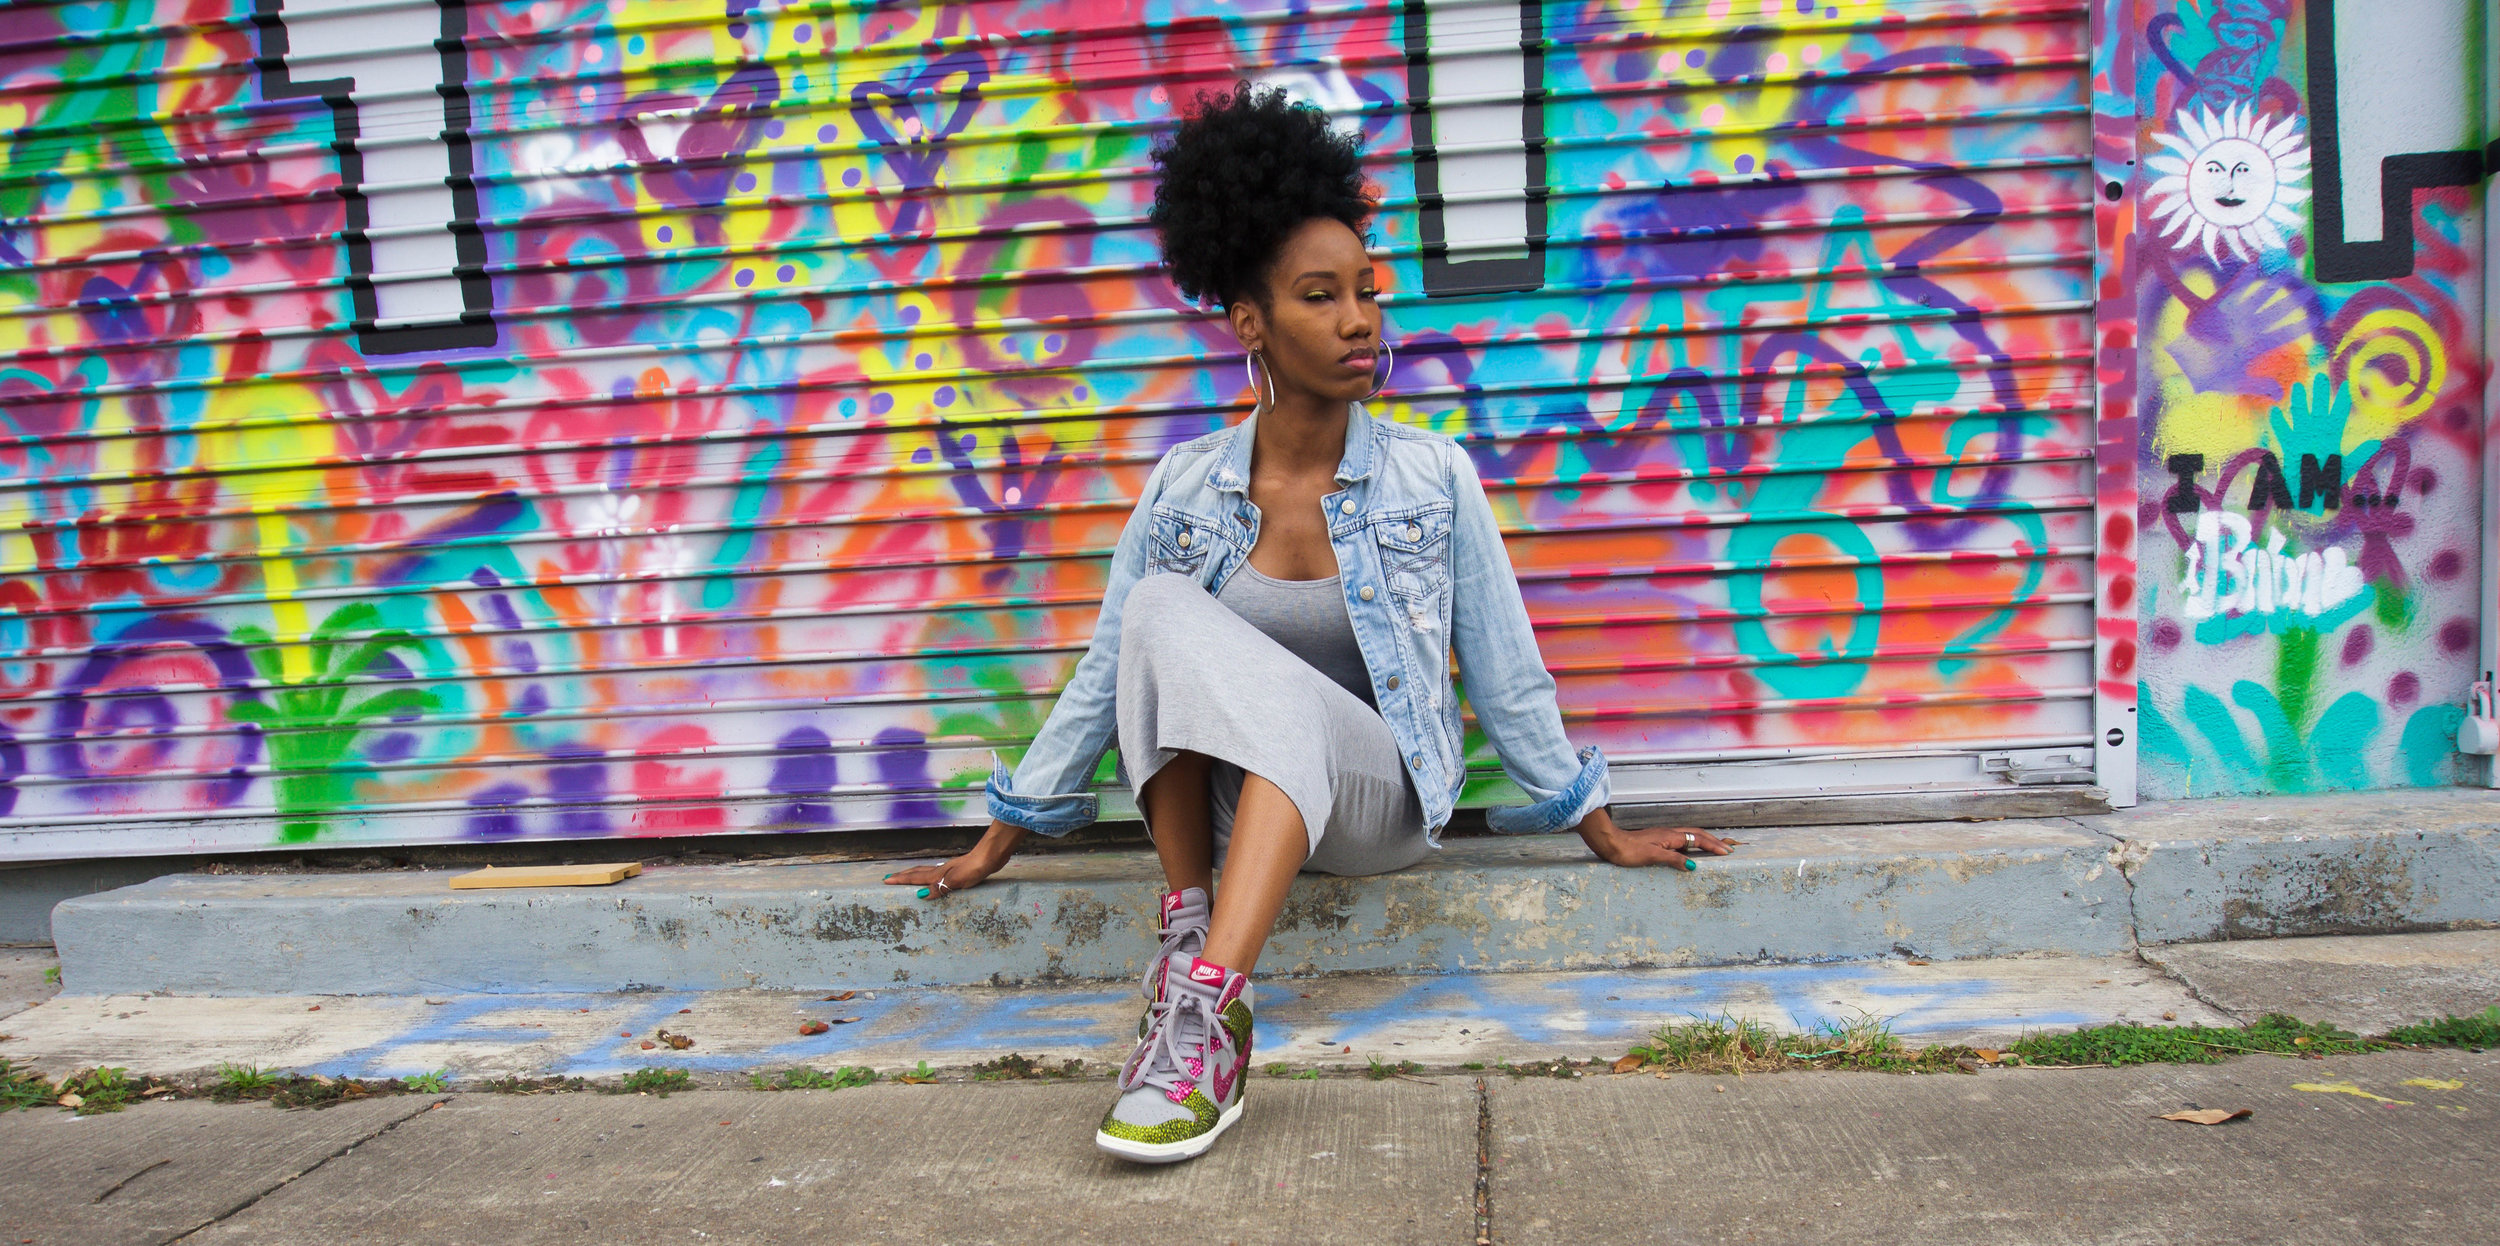 Sneaker Fashion  Dresses to Wear with Sneakers feat. Custom Nike Shoes 48b620ba6